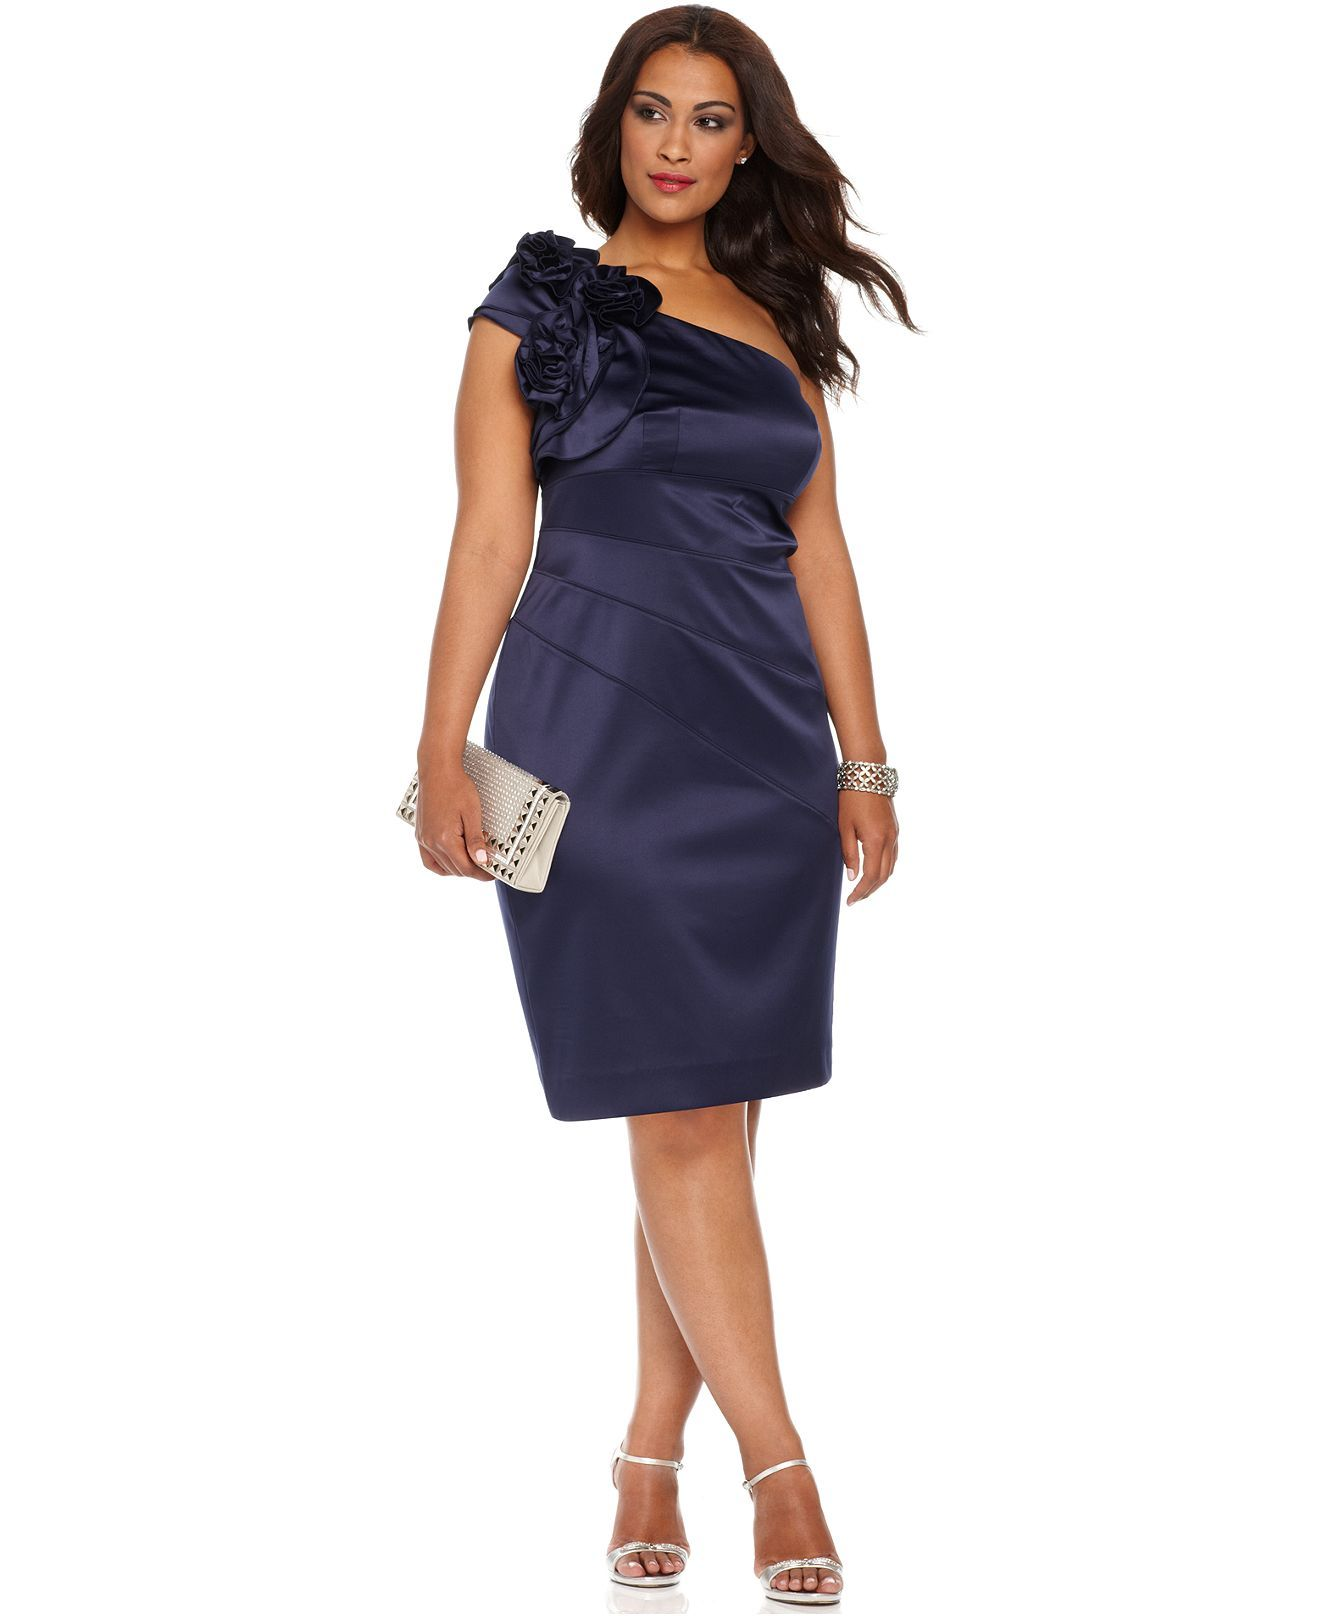 Jessica Simpson Plus Size Dress, Sleeveless One Shoulder Seamed ...